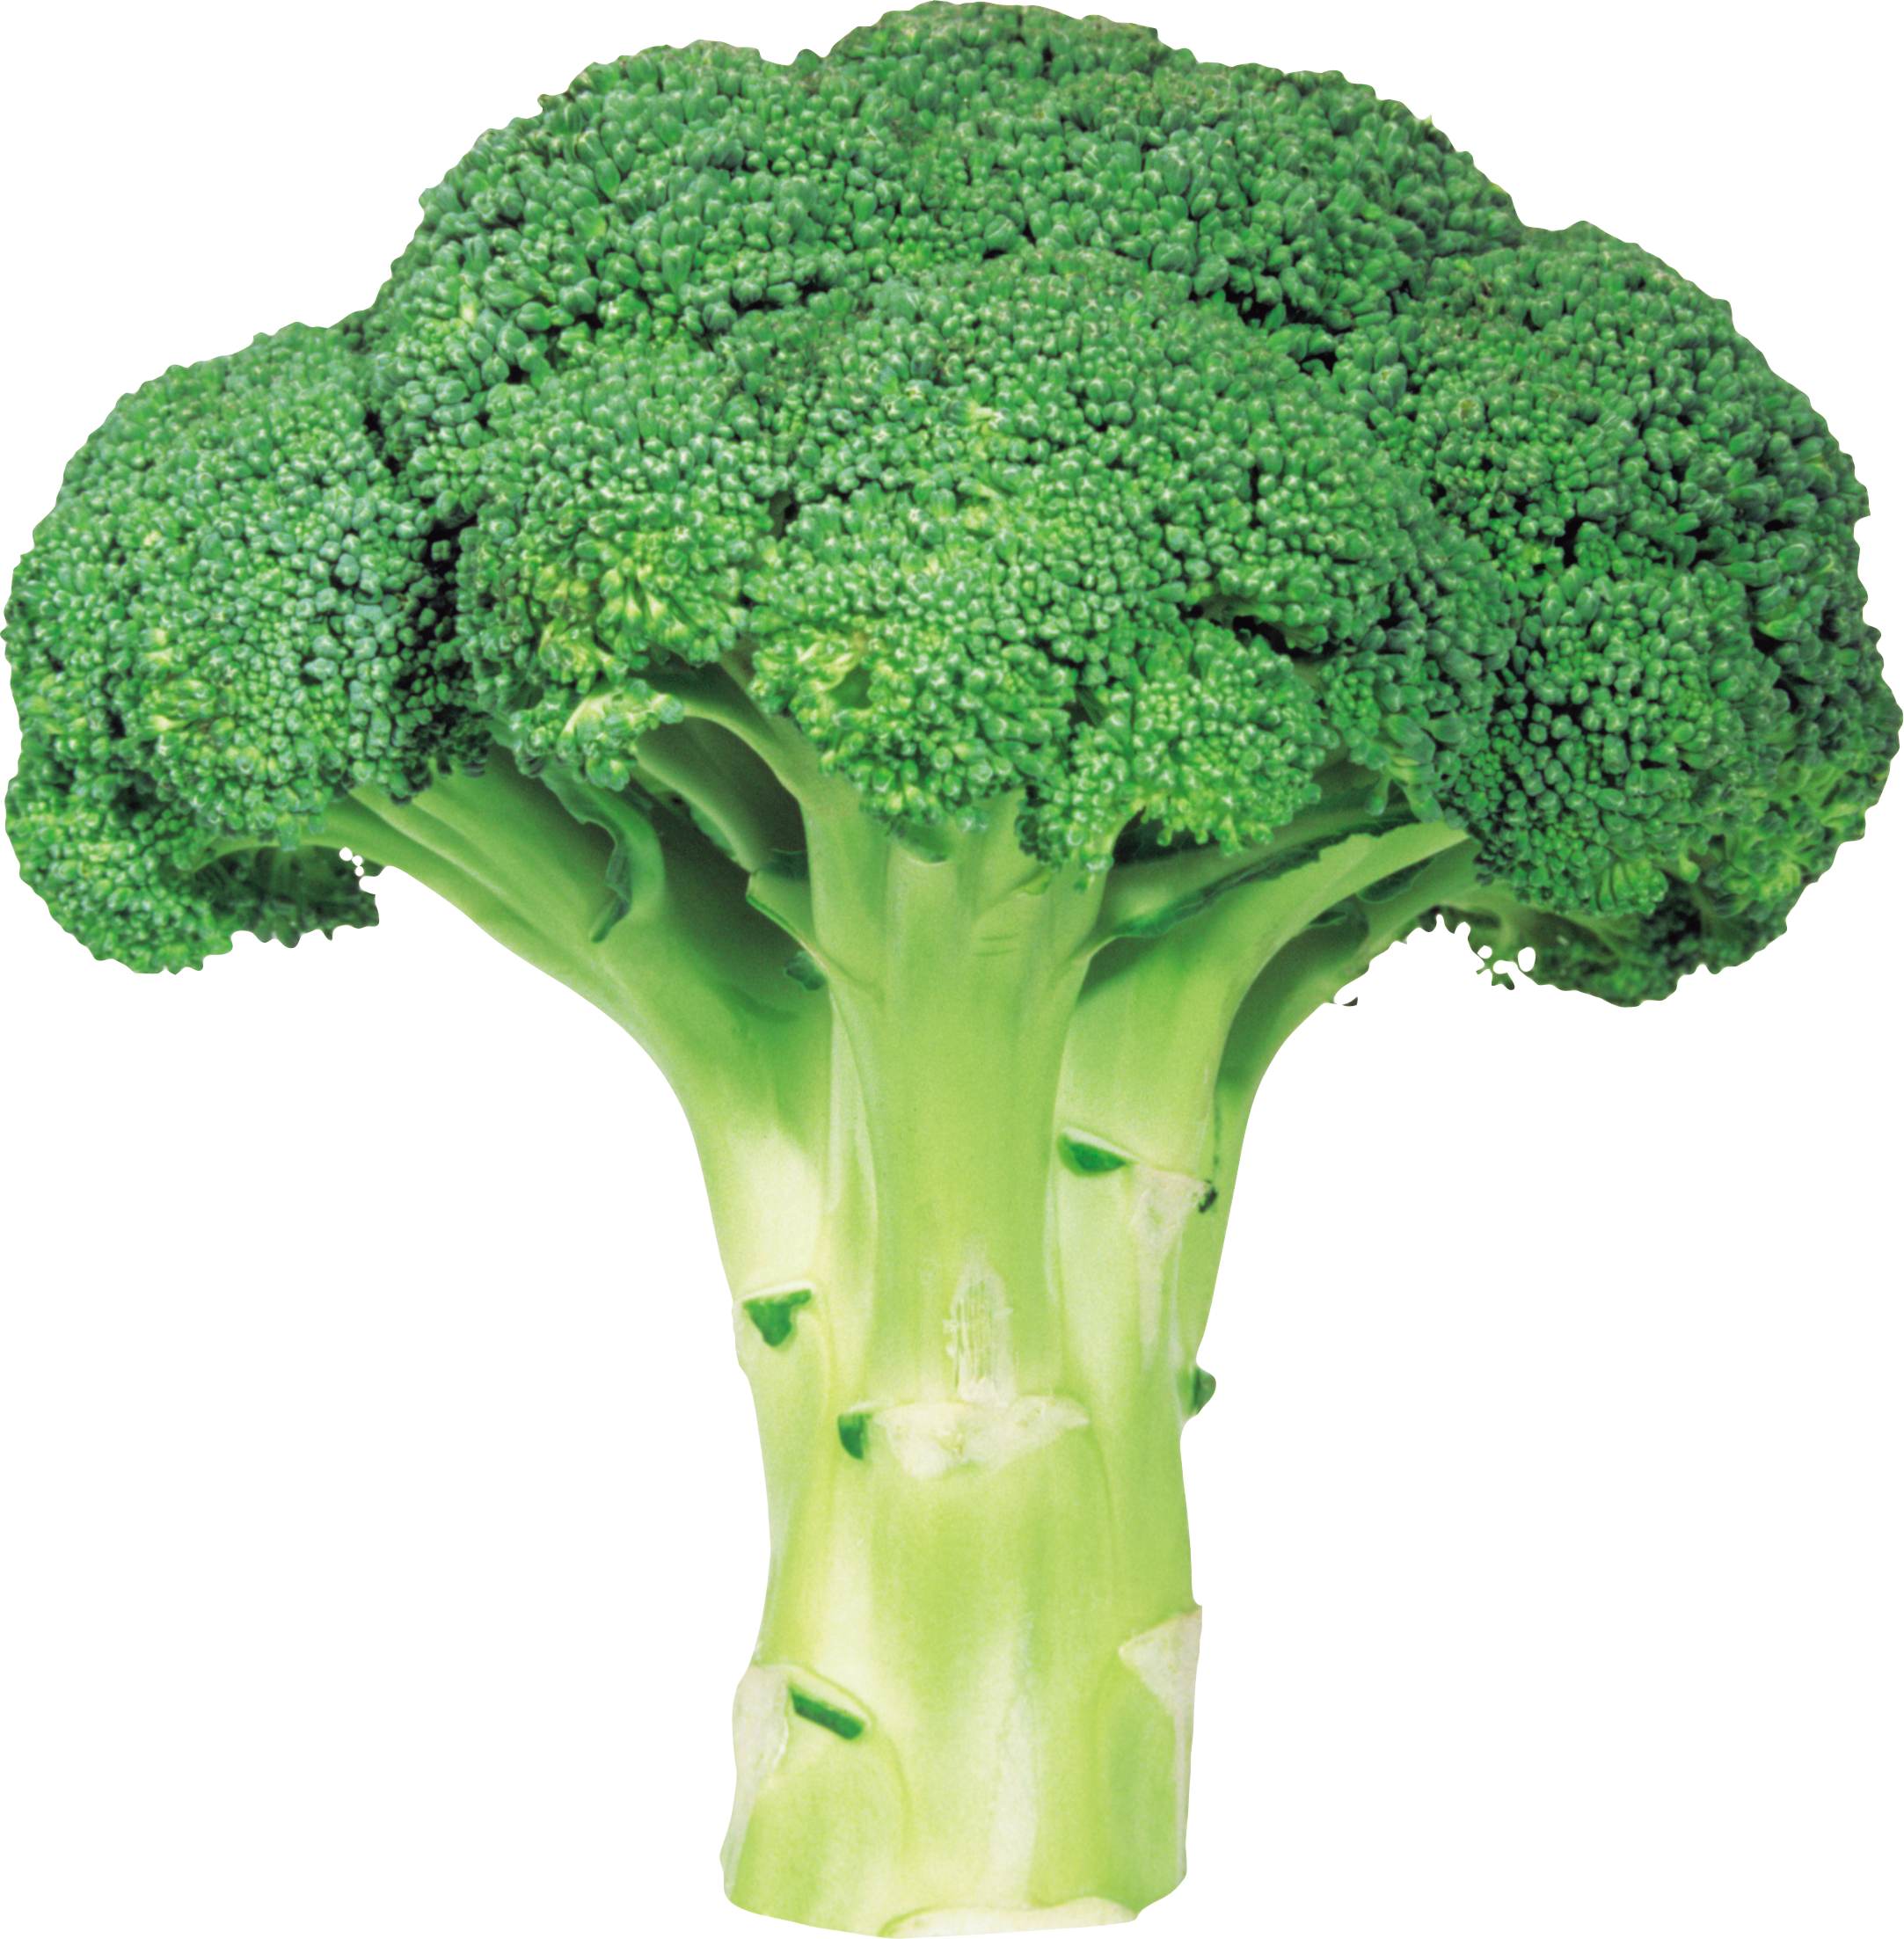 Green Fresh Broccoli